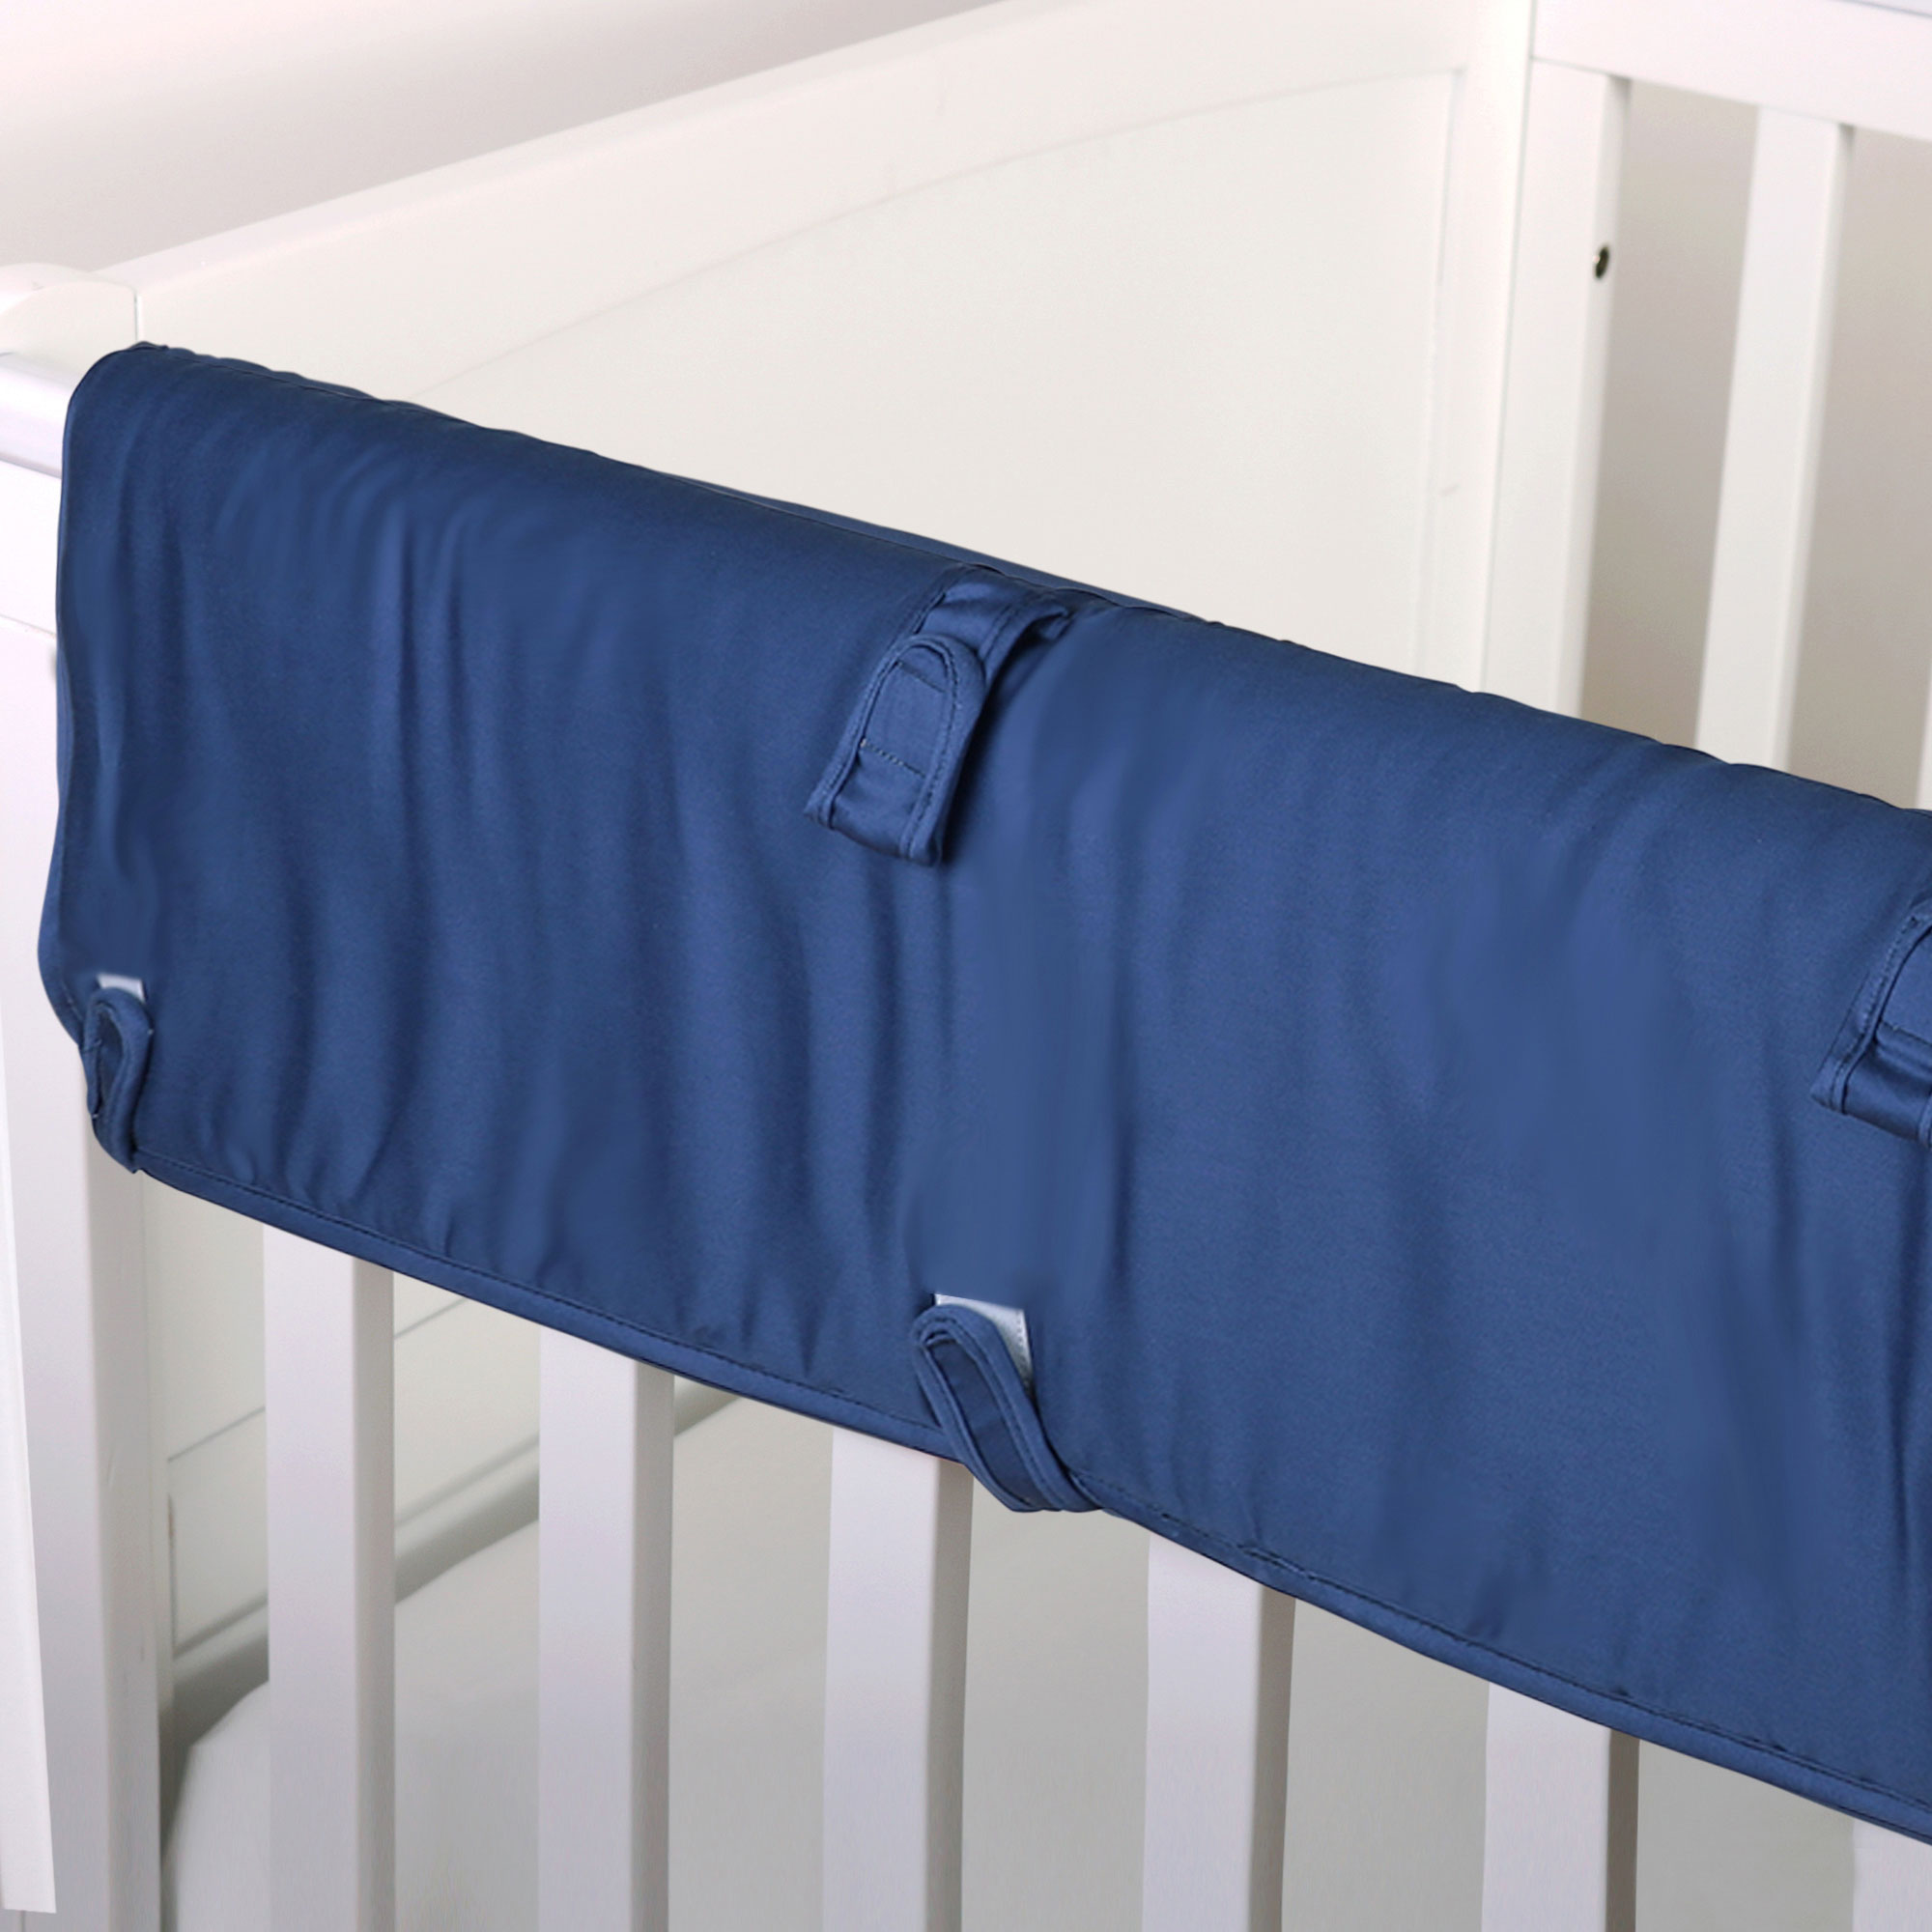 The Peanut Shell Baby Crib Rail Guard - Solid Navy Blue - 100% Cotton Sateen Cover, Polyester Fill